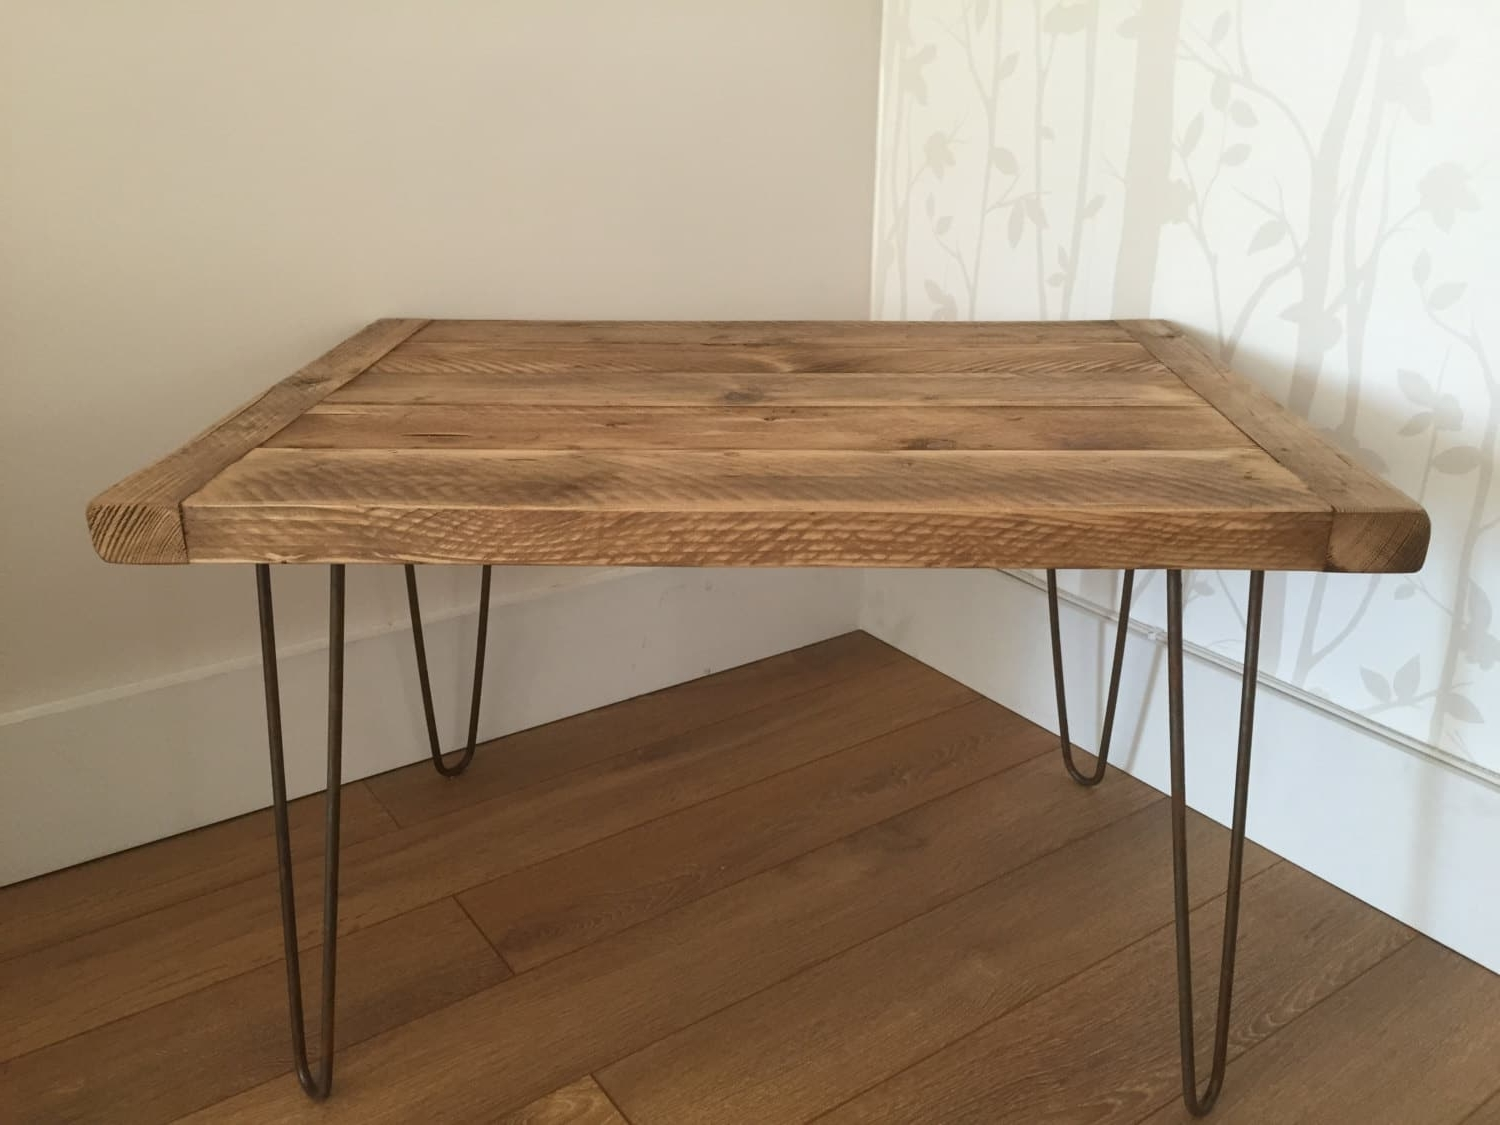 Reclaimed Rustic Solid Pine Coffee Table With Metal Hairpin Legs For Latest Reclaimed Pine & Iron Coffee Tables (View 11 of 20)